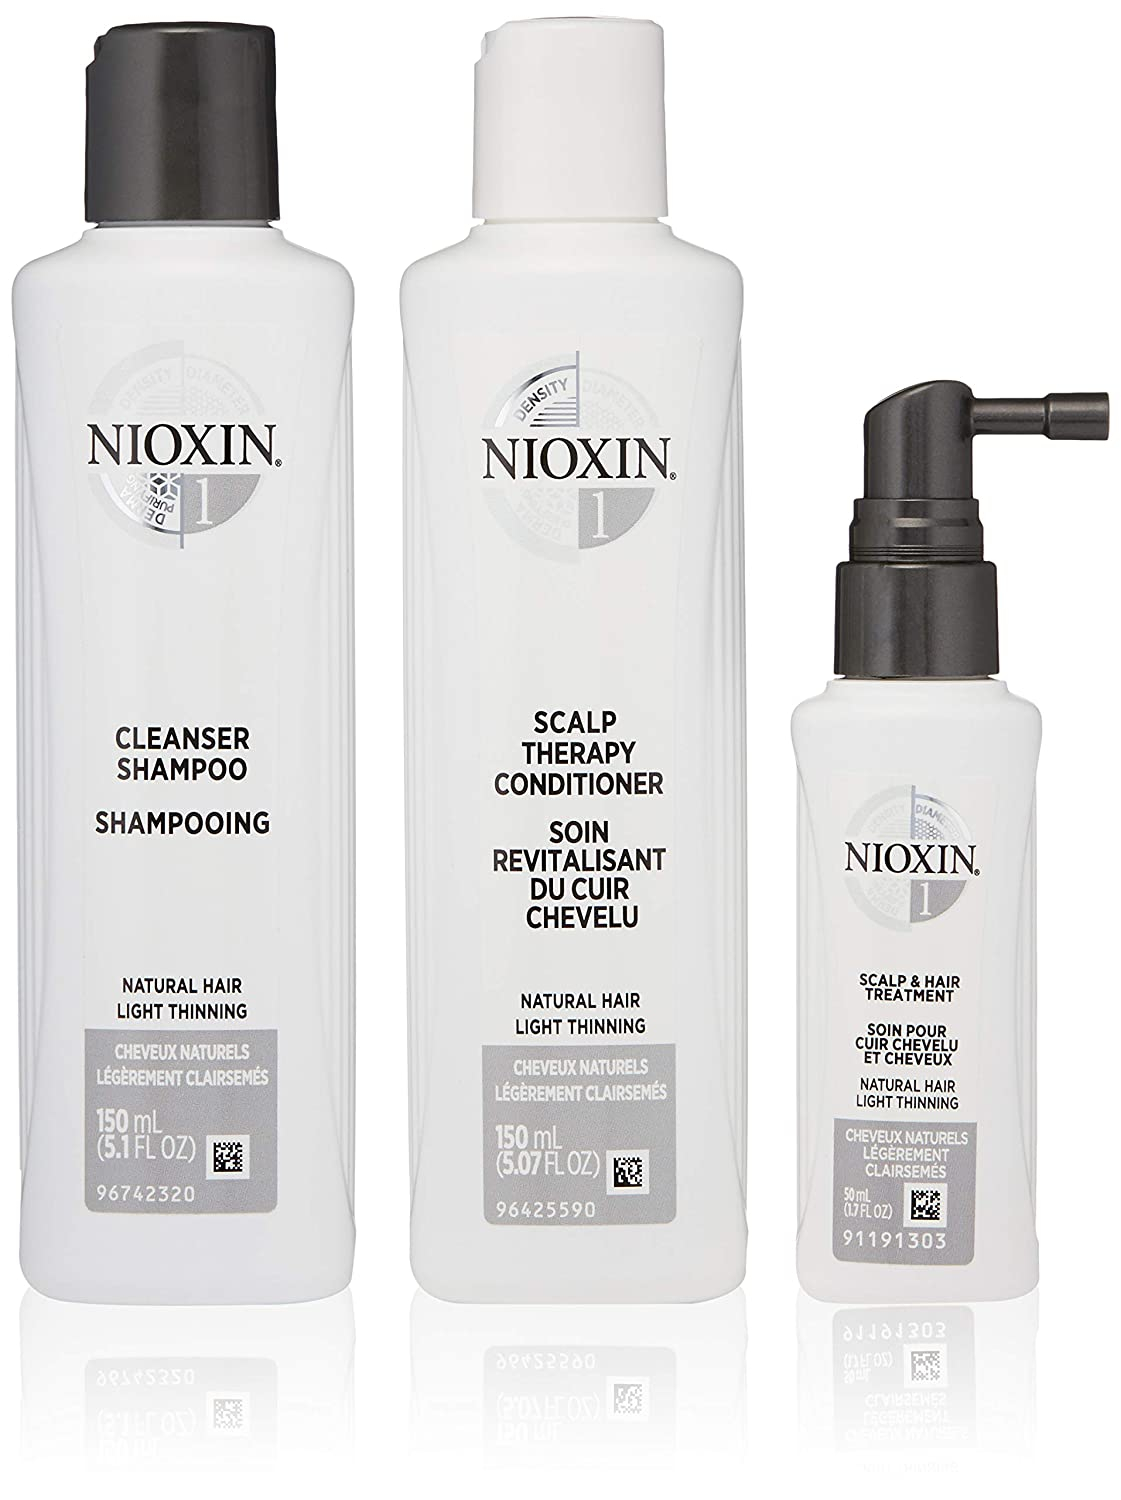 Nioxin Hair Care Kit System 1 for Fine Hair with Light Thinning